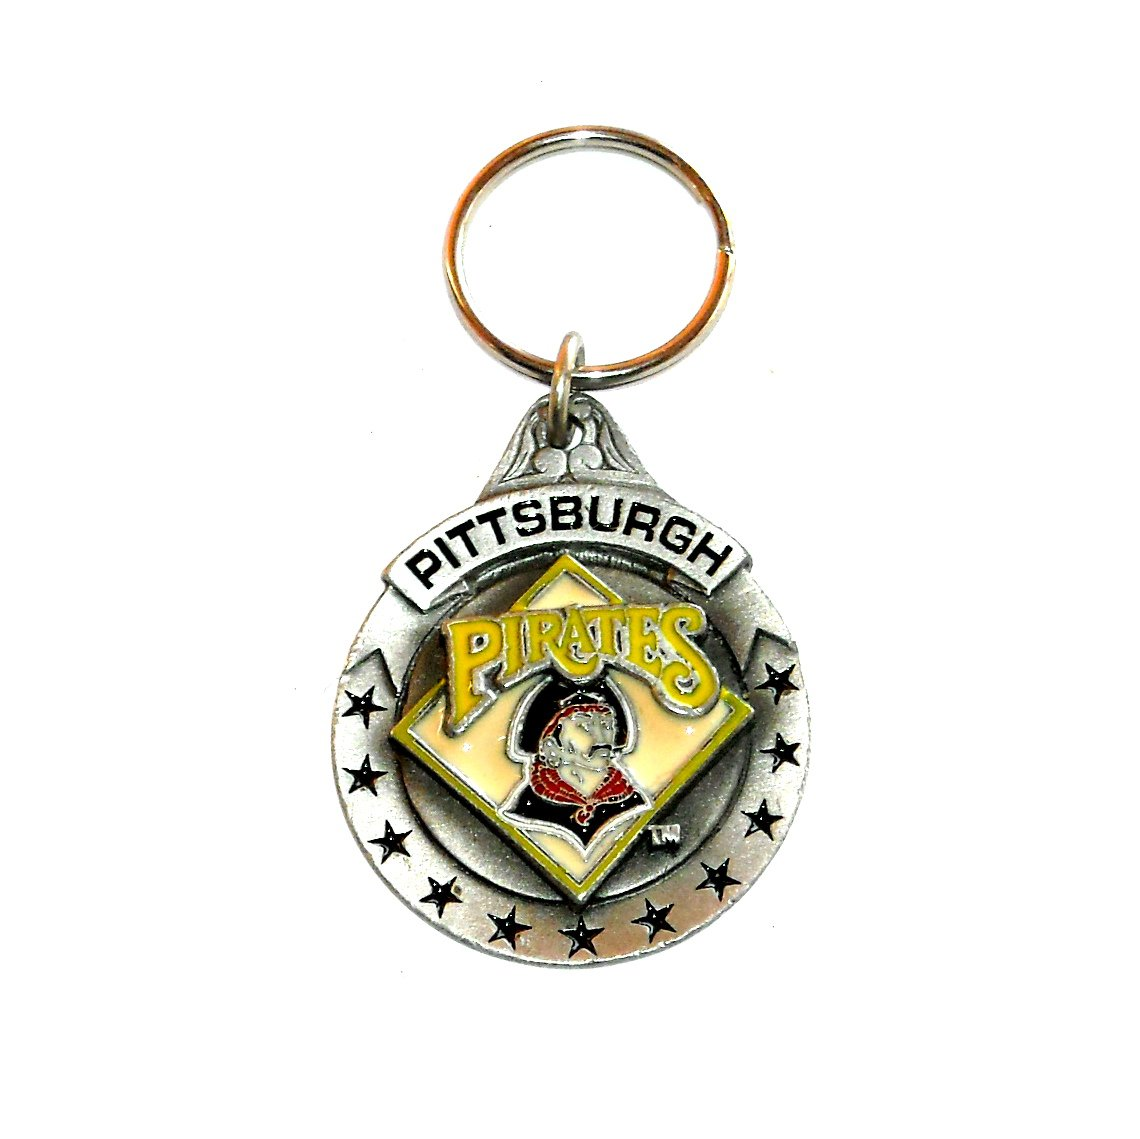 Pittsburgh Pirates National League Baseball Fob Key Ring Keychain